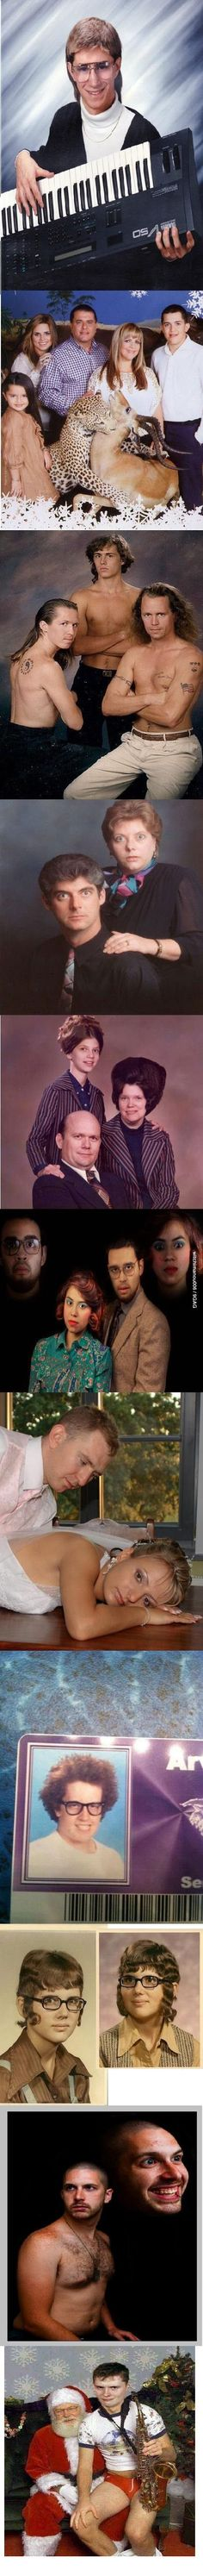 Awkward Family Photos---Funny Joke Pictures.  Just---WOW---Don't!!!